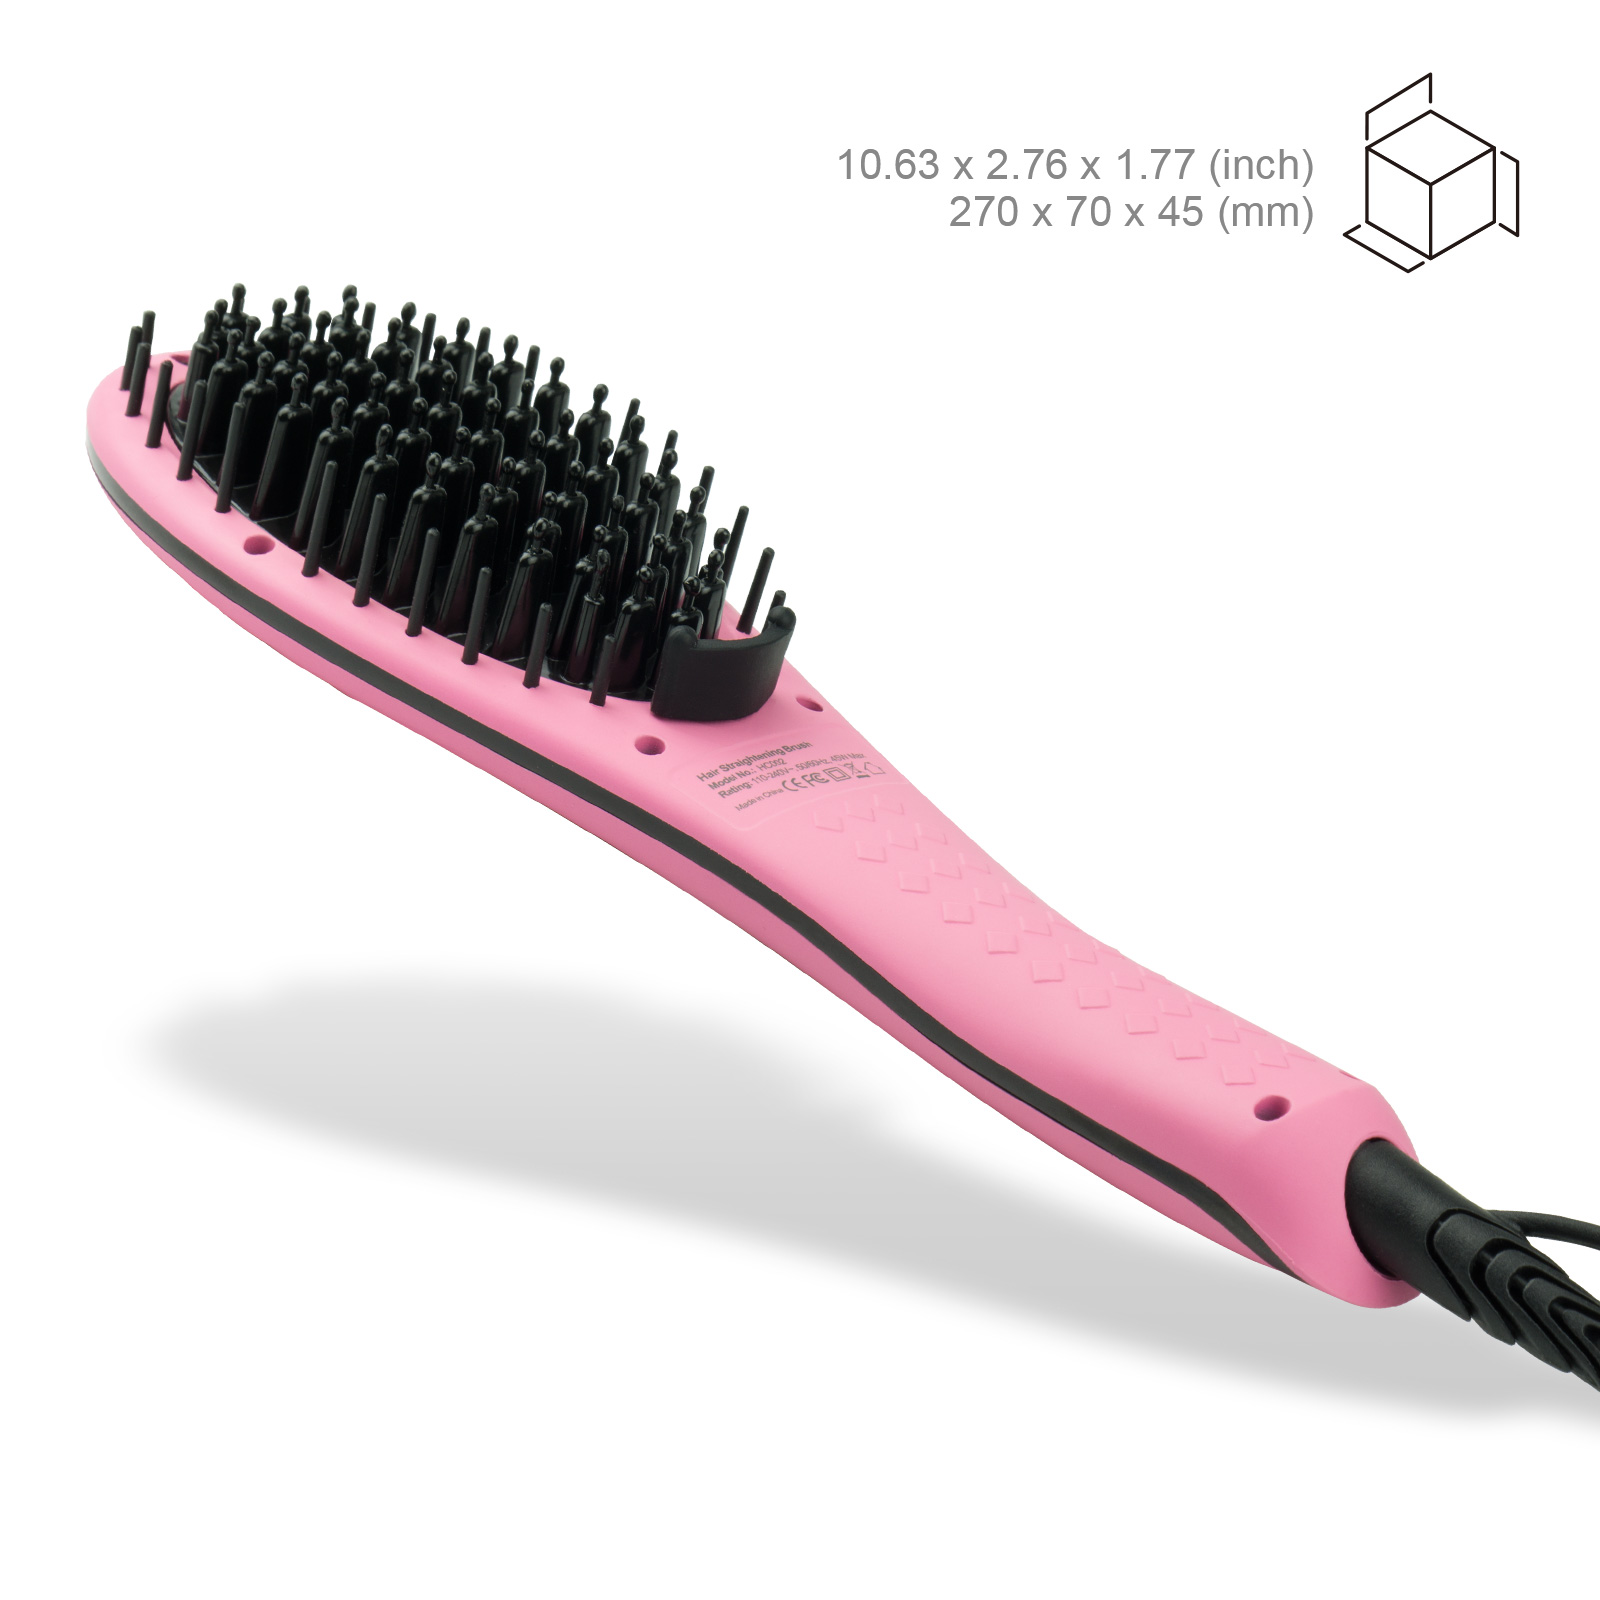 Apalus Ceramic Hair Straightening Brush Pink